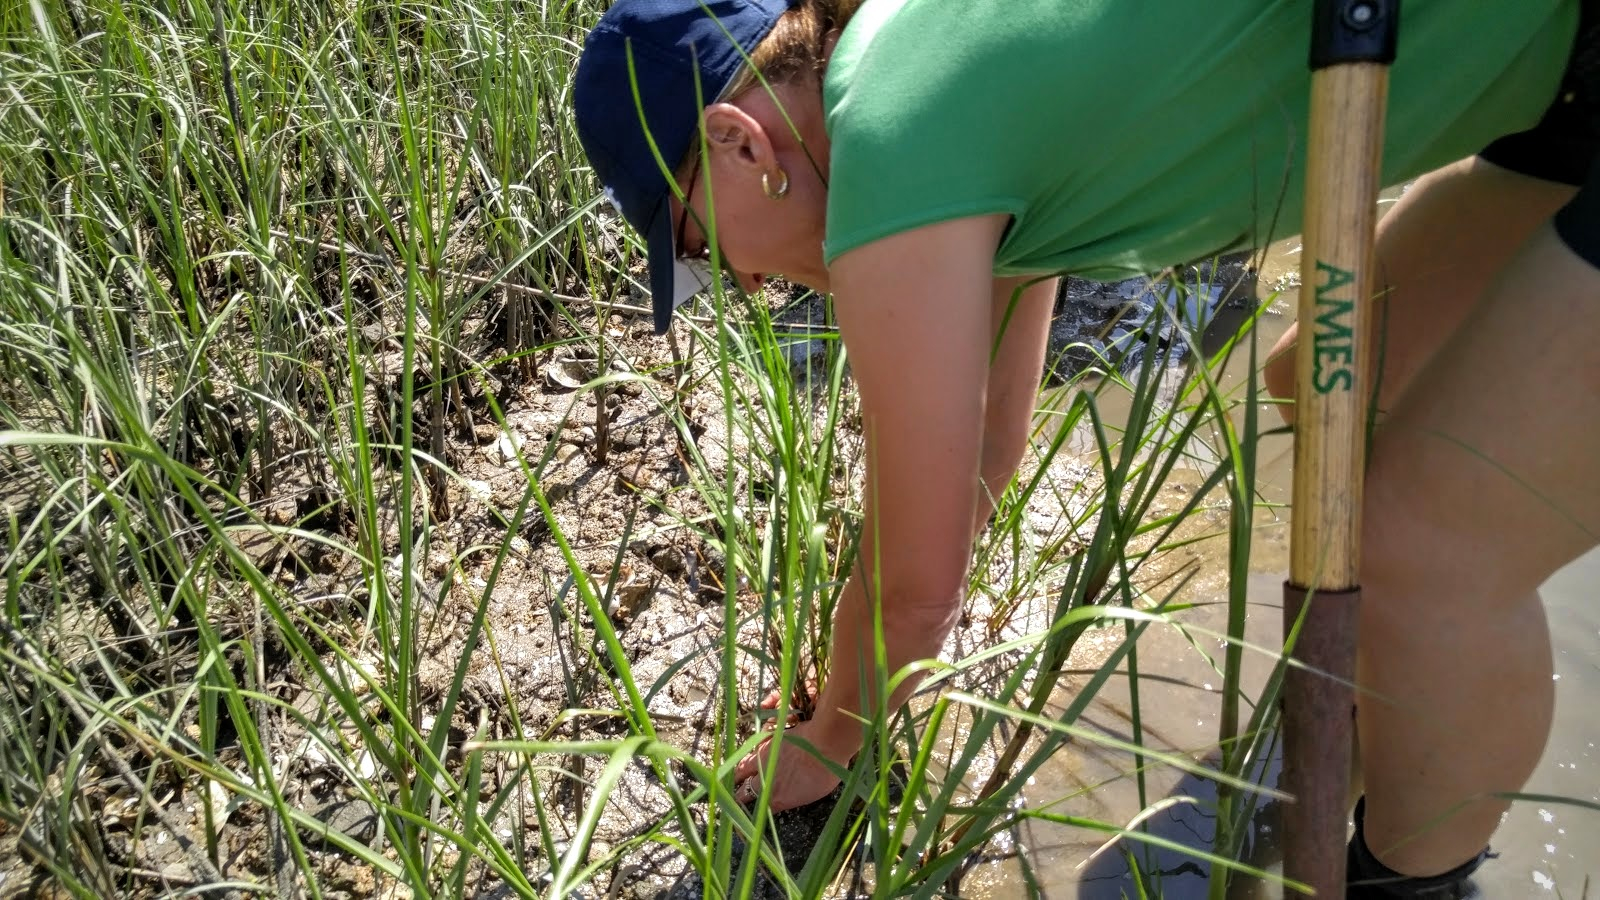 Planting smooth cordgrass plugs